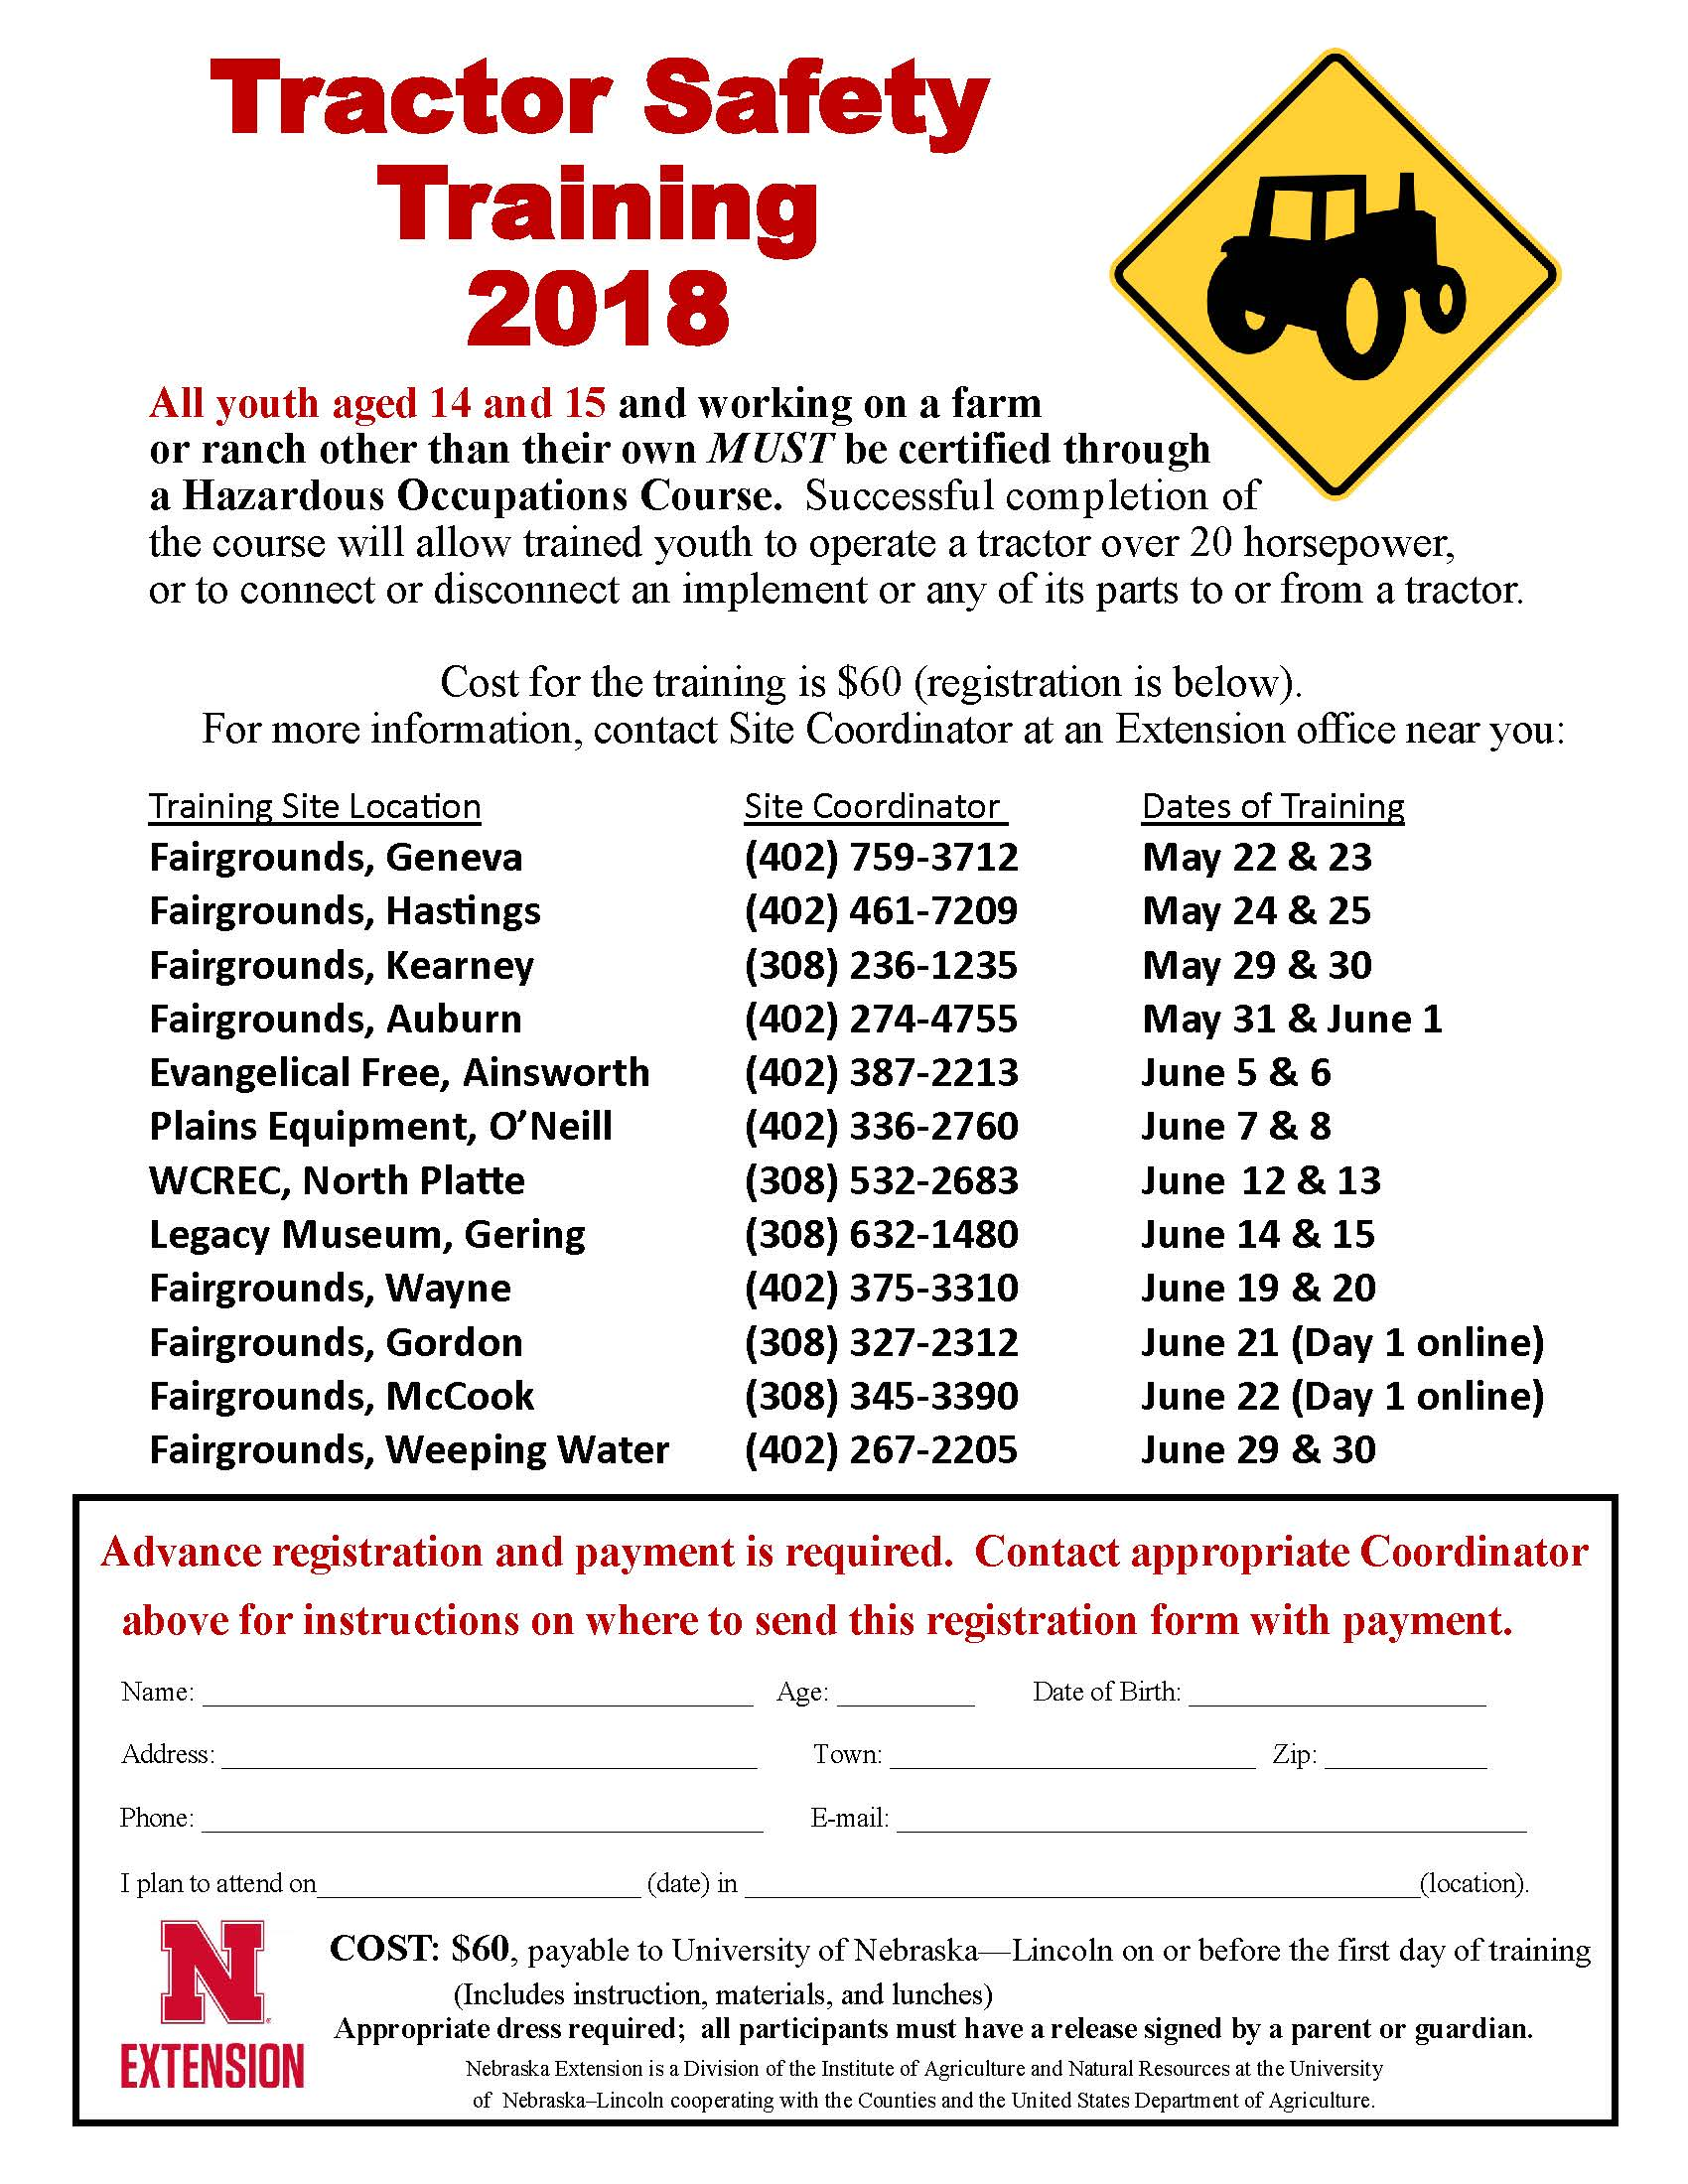 Tractor Safety Flier 2018